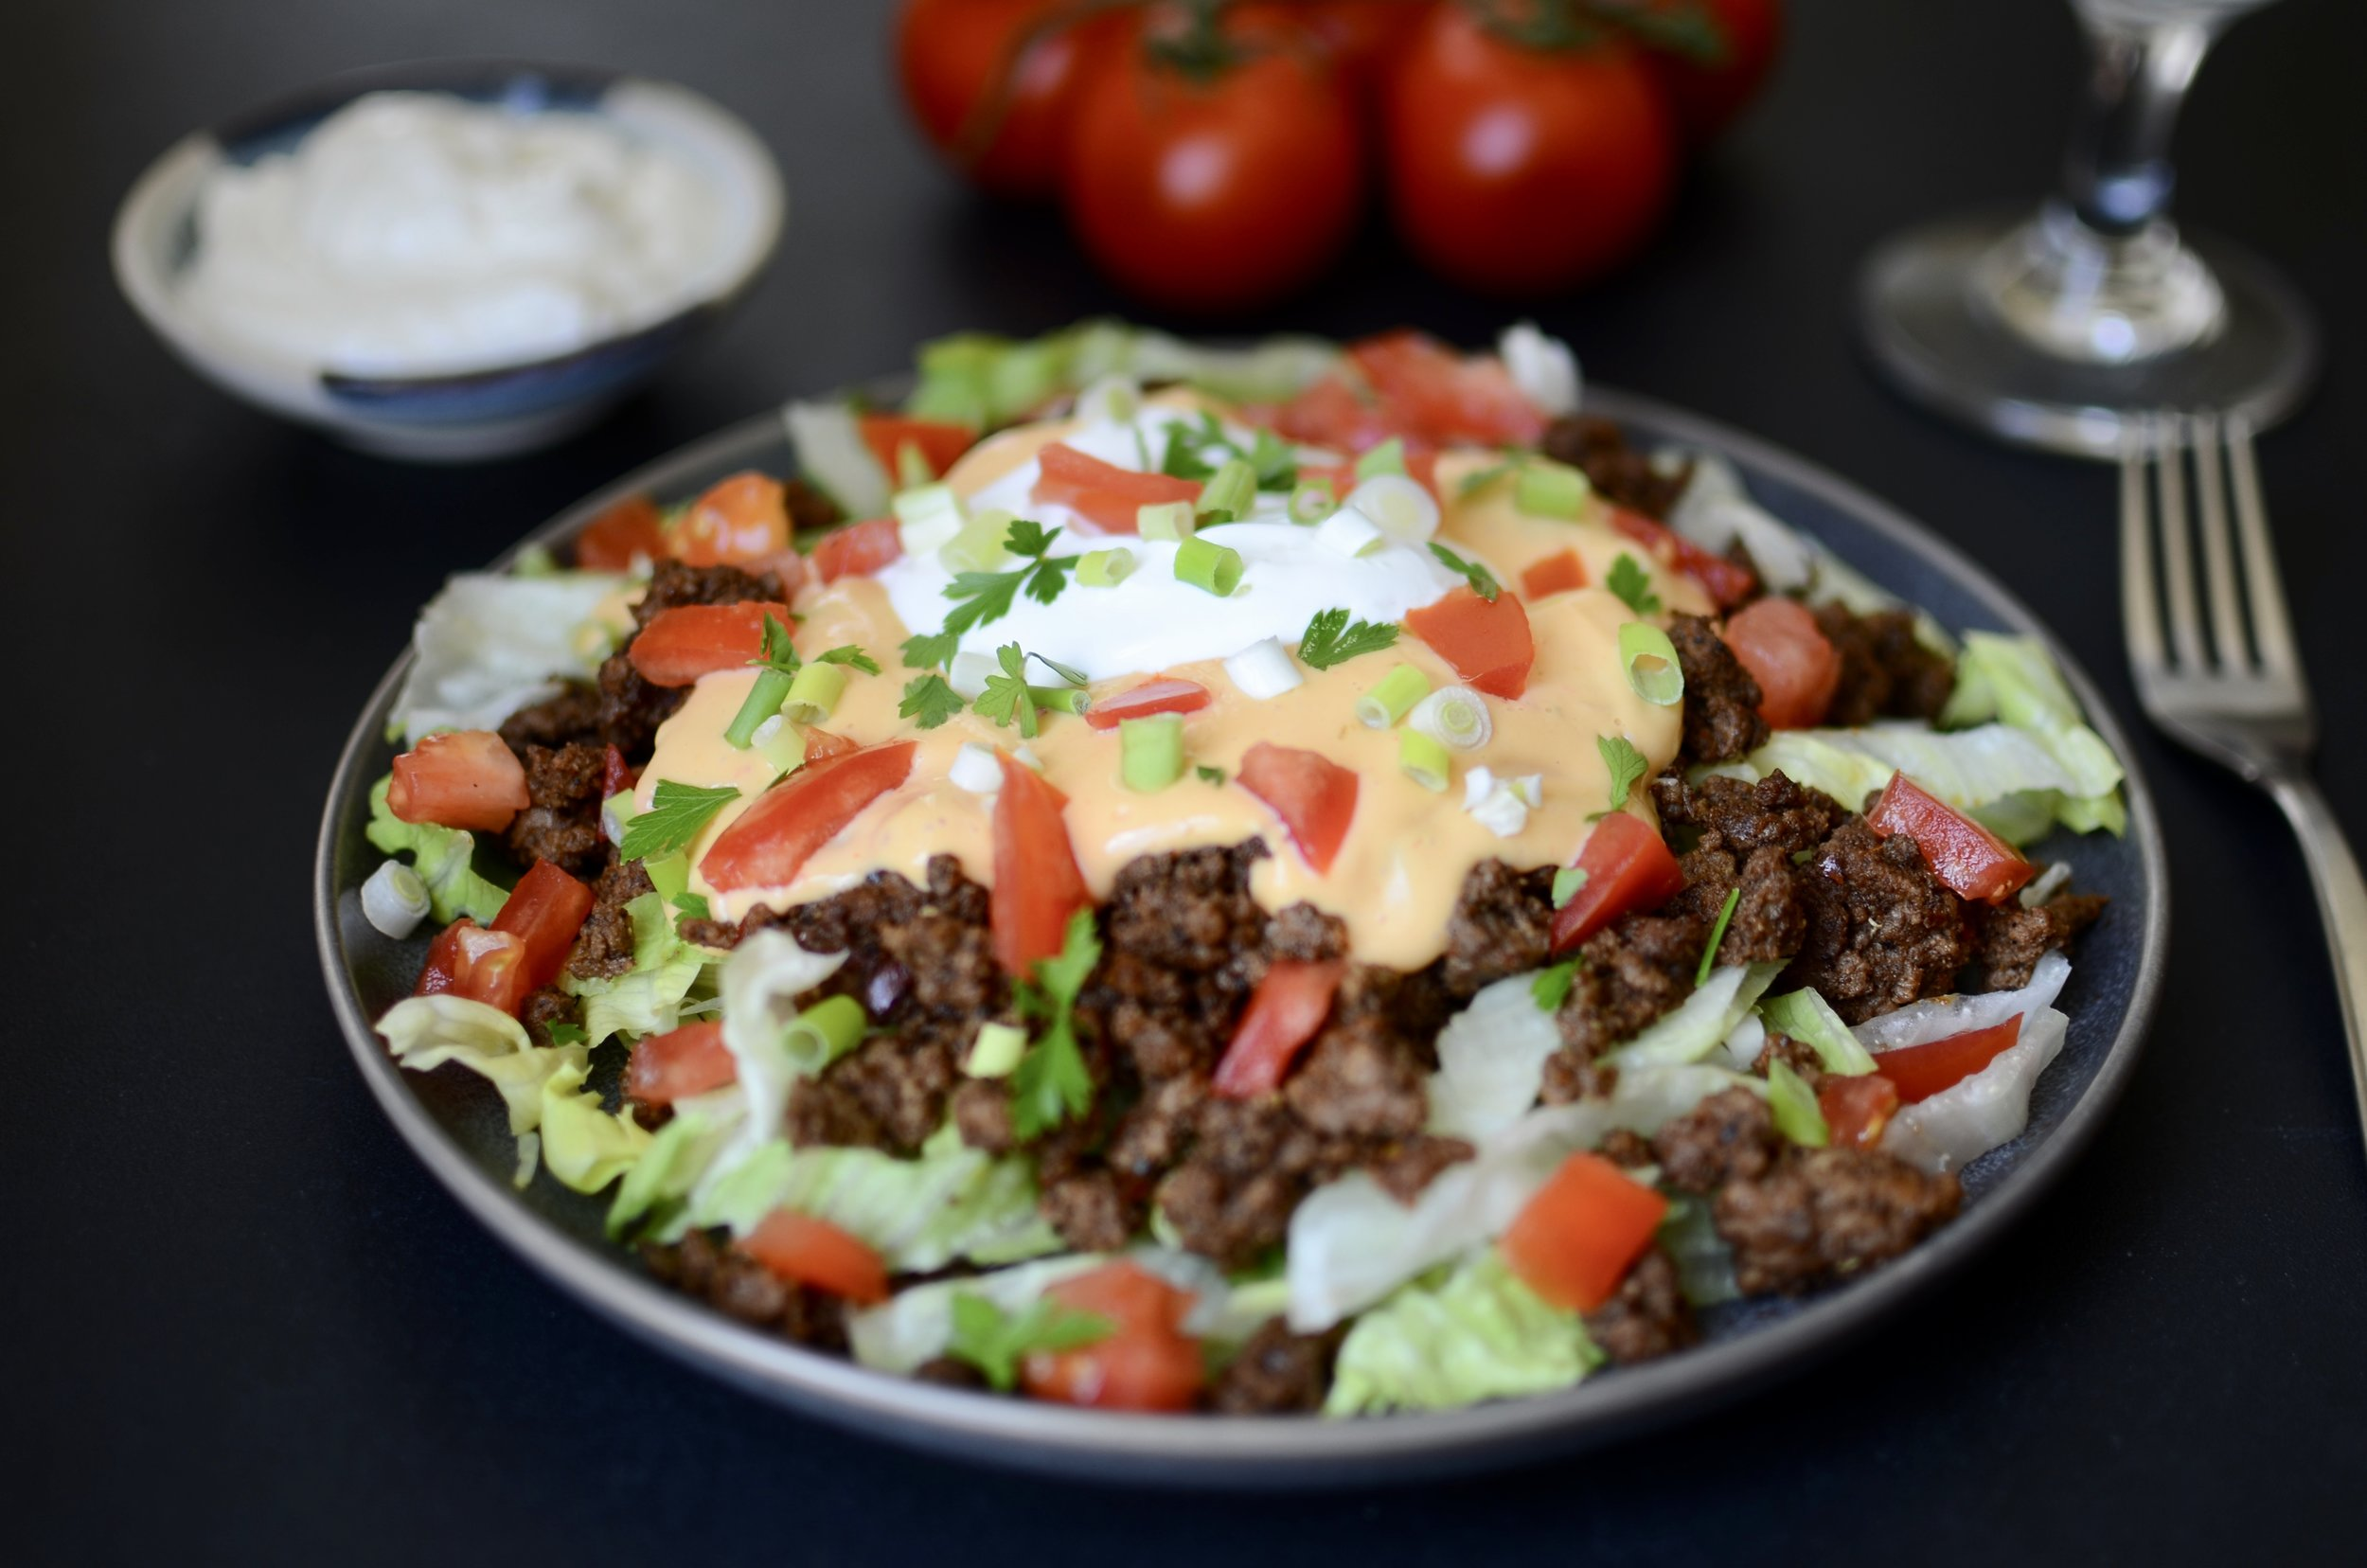 ButterYum - Keto Taco Seasoning Mix. How to make keto-friendly taco seasoning. Lowcarb taco seasoning mix. how to make your own taco seasoning keto. substitute for taco packet. how to make keto taco meat. keto taco beef.